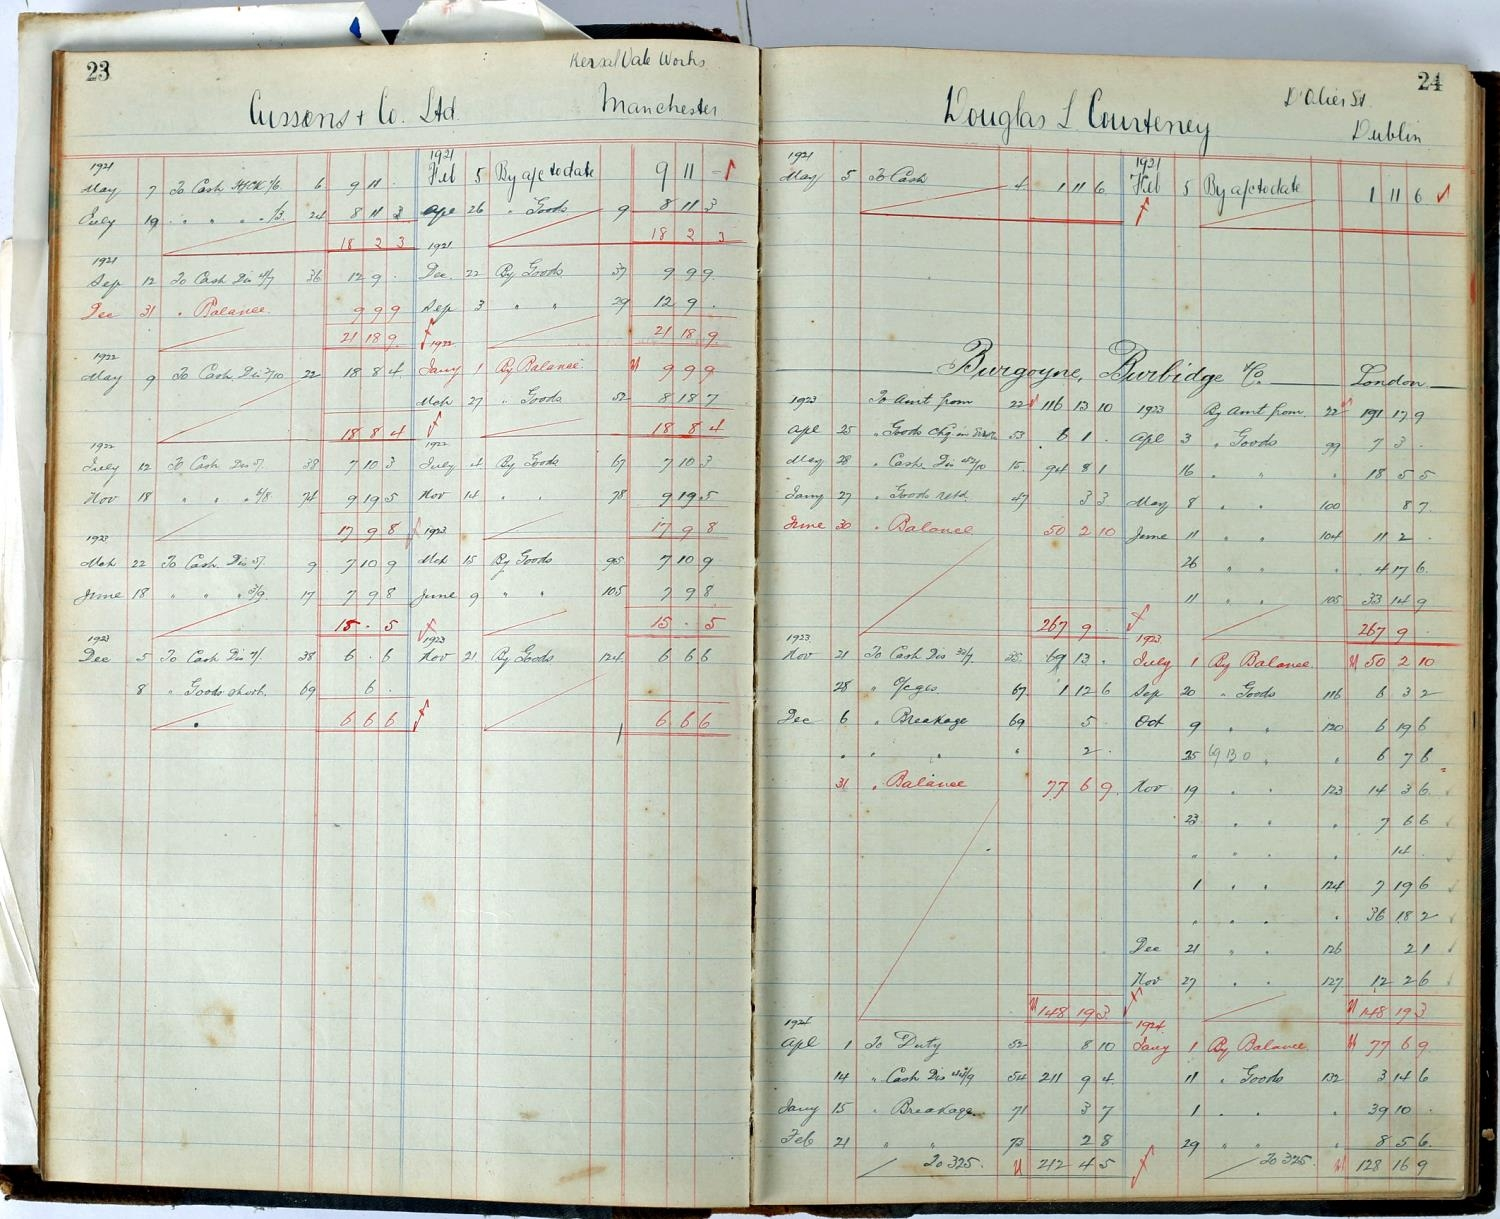 1921 Clearys Debtors' Ledger. Lists the famous Dublin department store's suppliers and the dates and